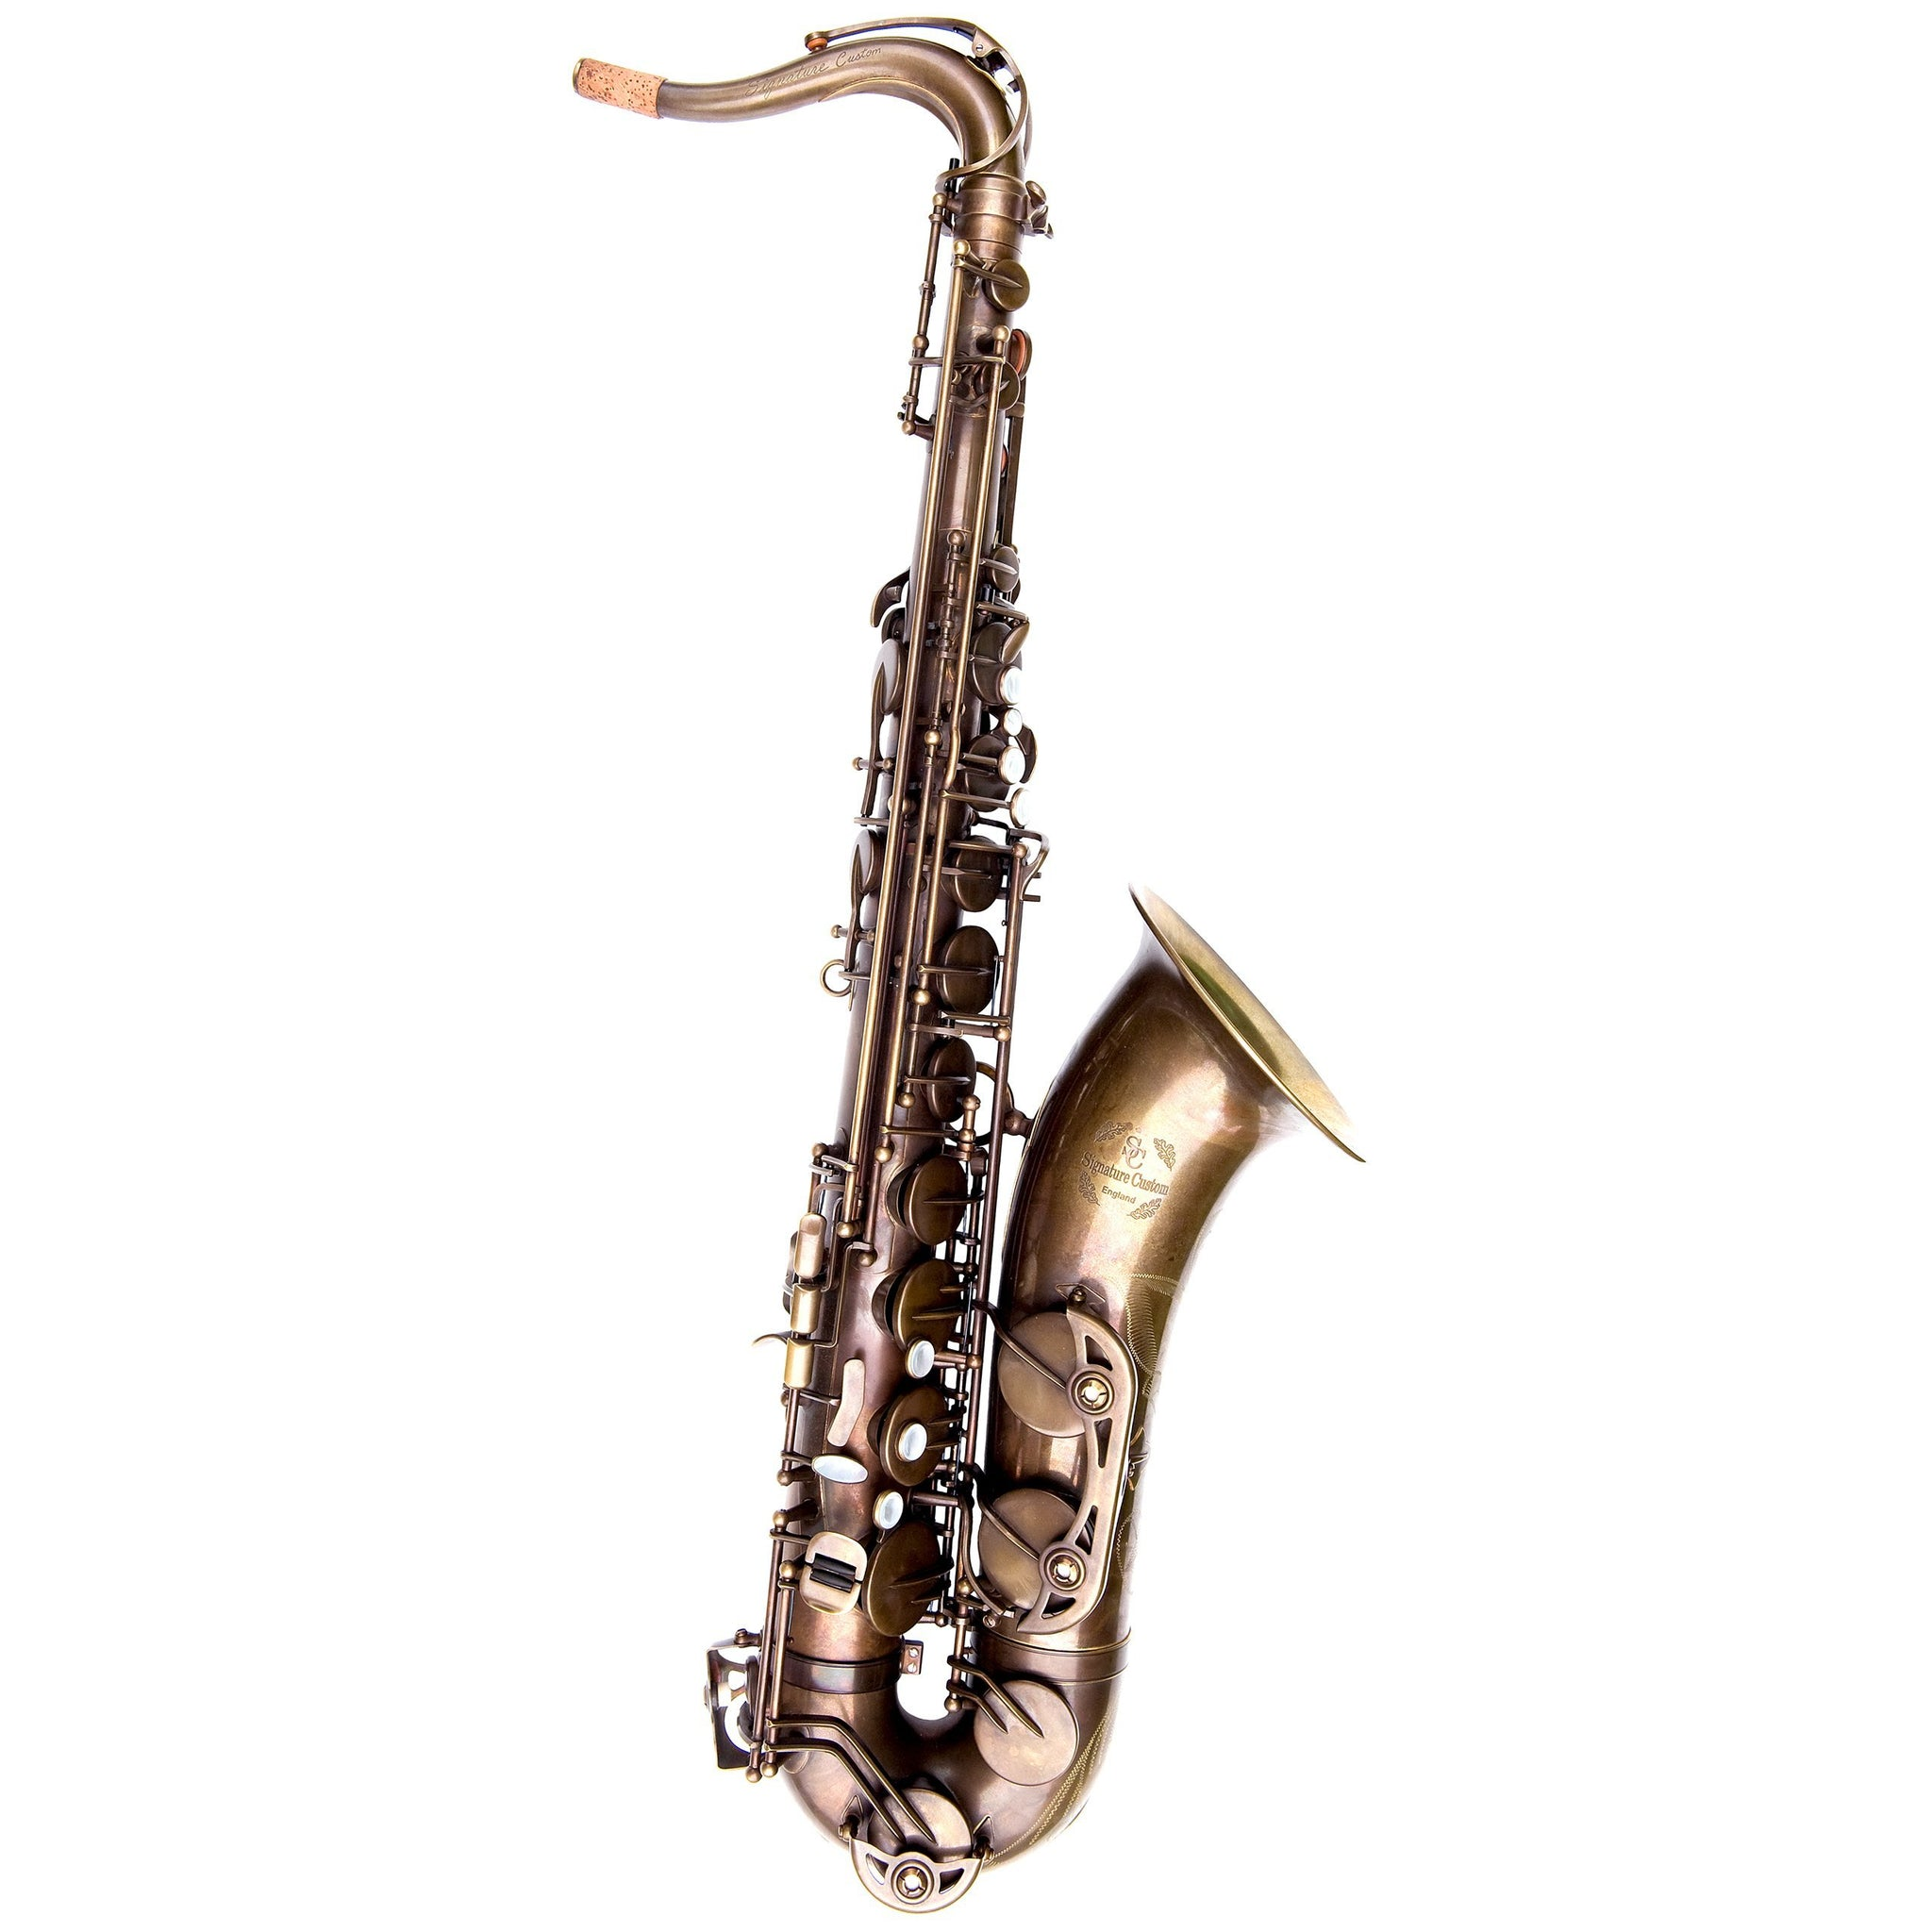 Trevor James - Signature Custom Tenor Saxophones-Saxophone-Trevor James-RAW-Music Elements